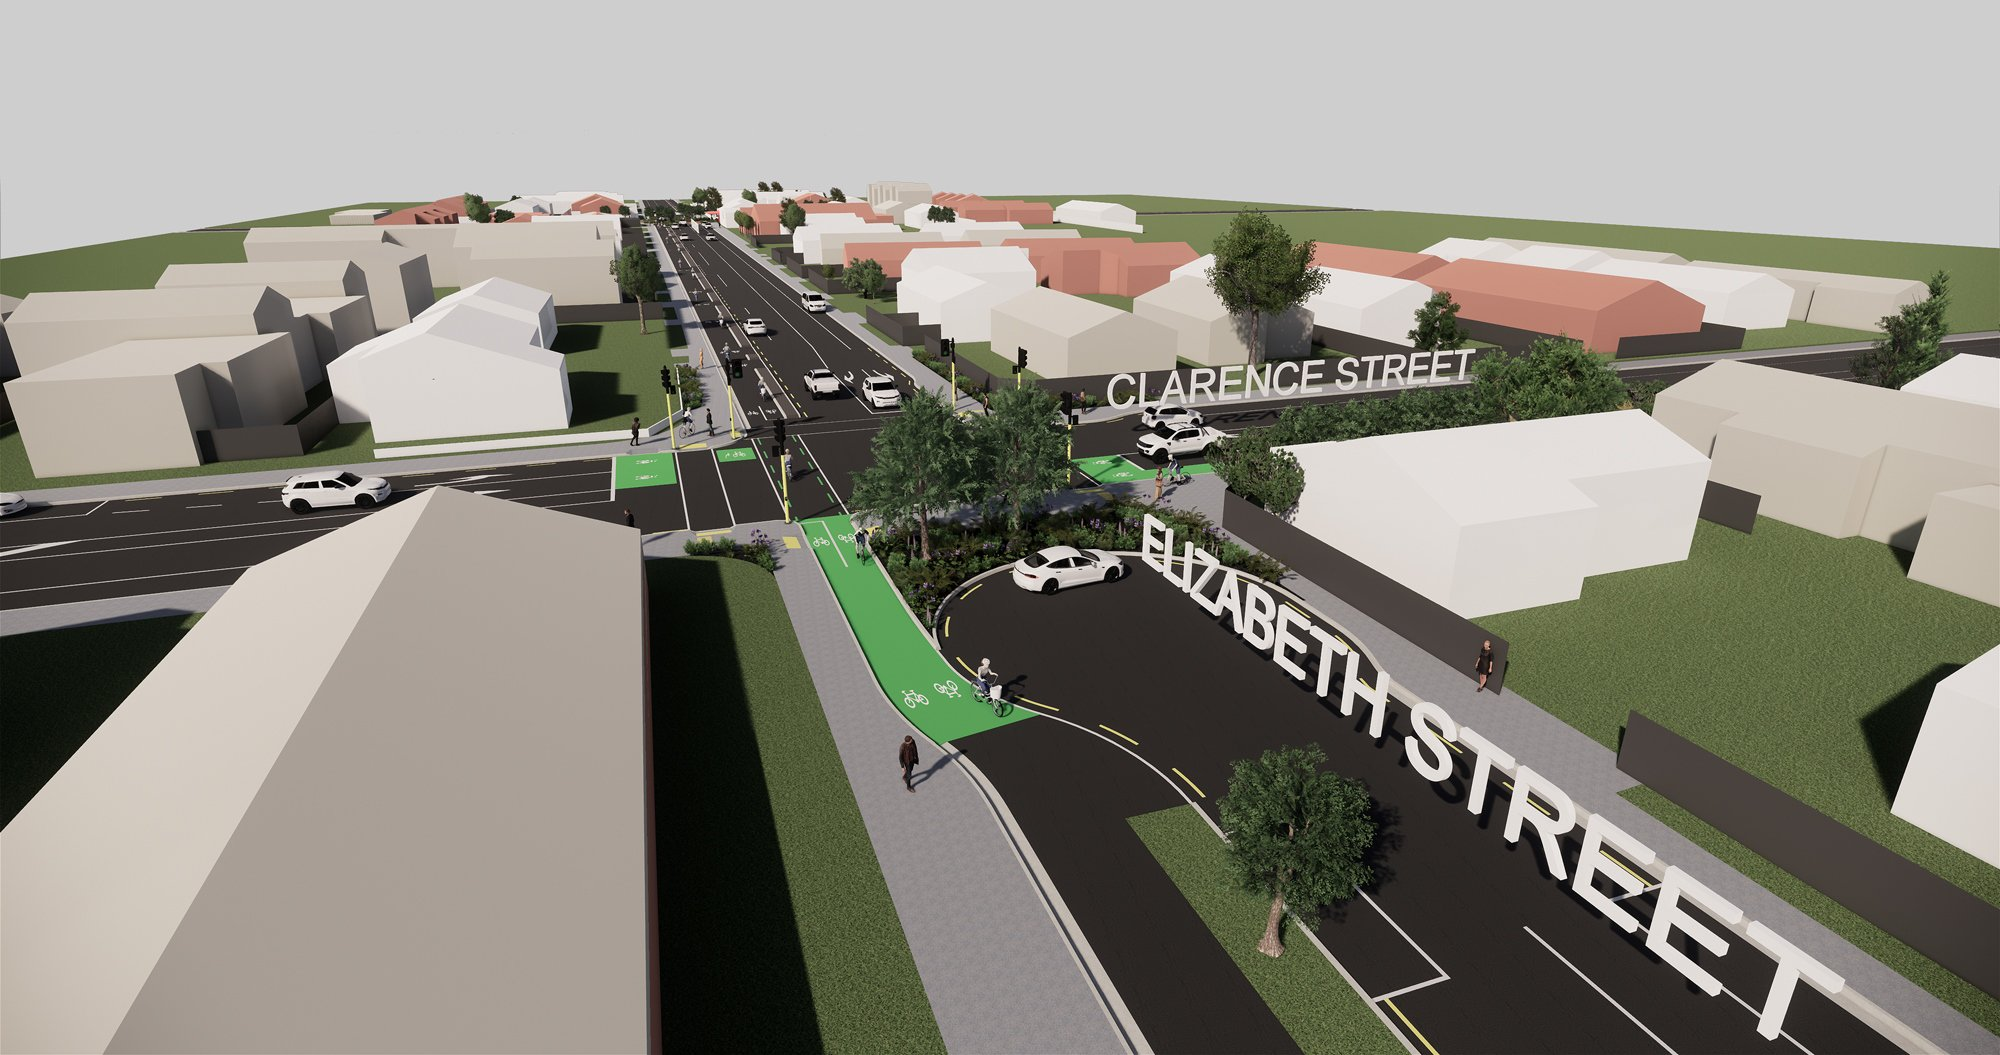 '3D visualisation of Elizabeth and Clarence streets